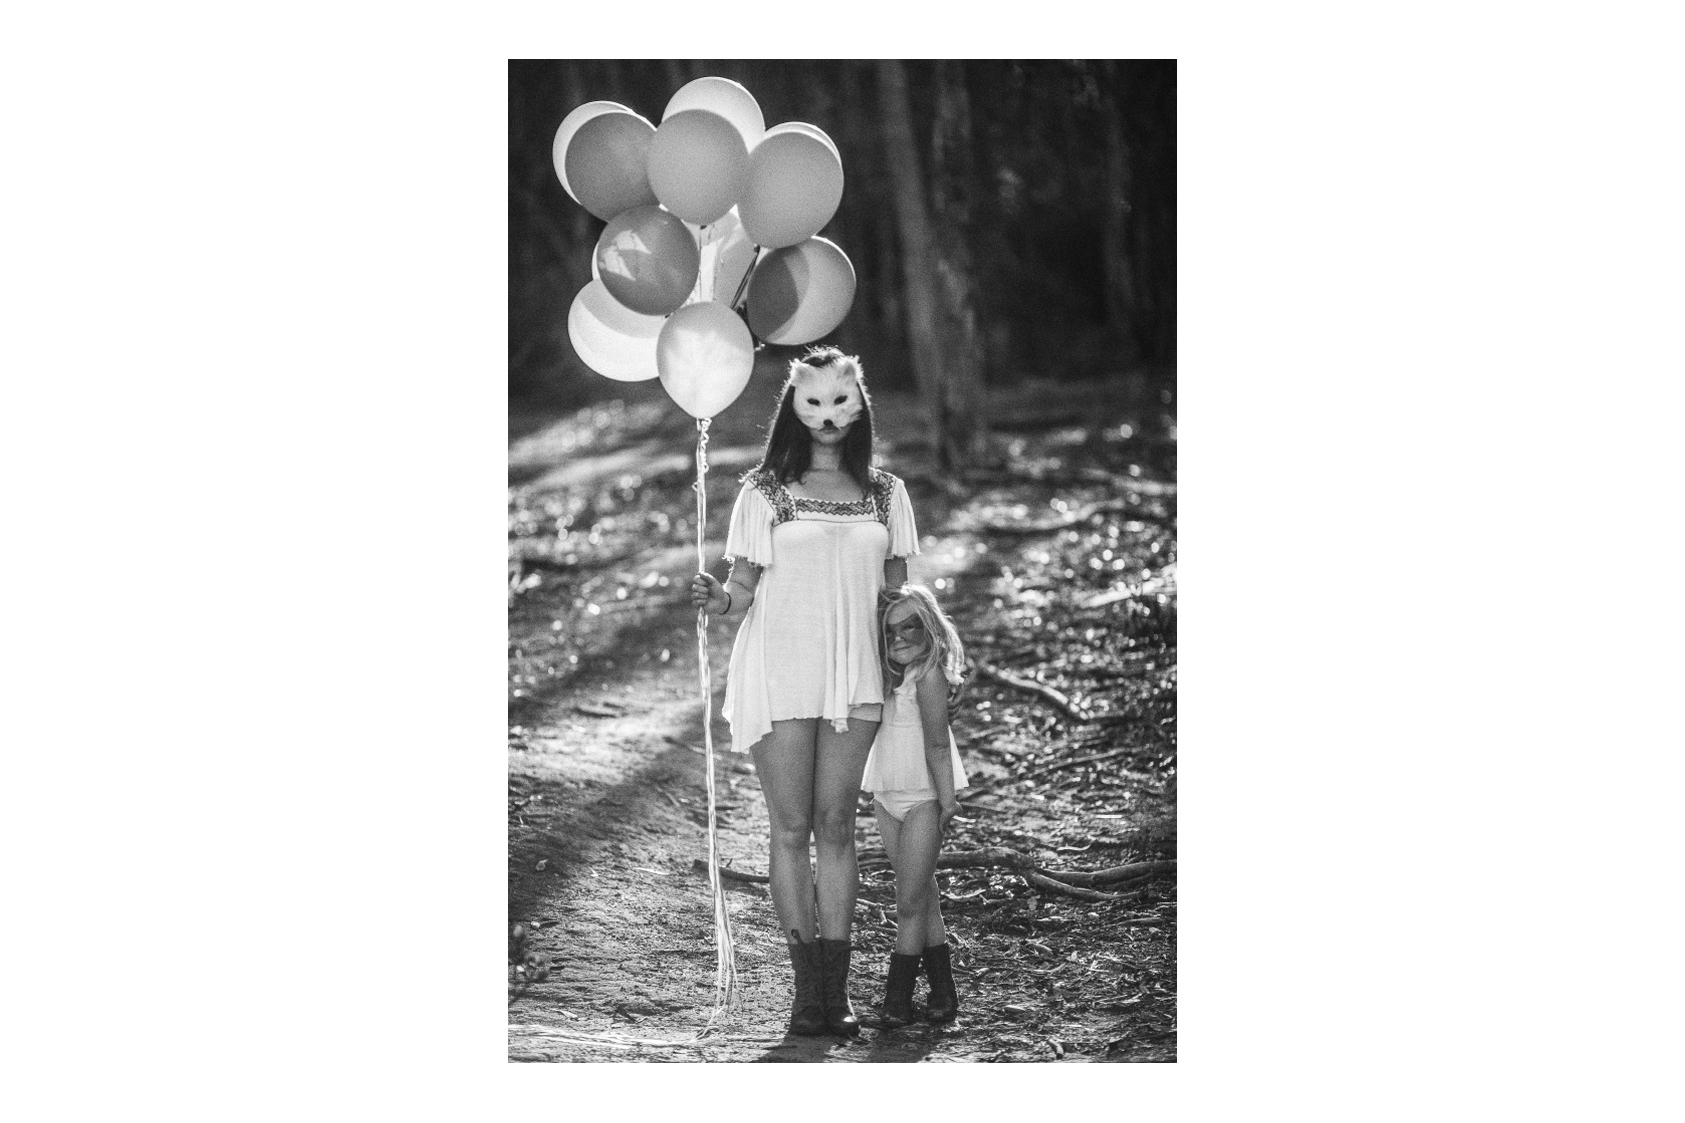 san diego wedding   photographer   monotone shot of child and woman in masks with balloons